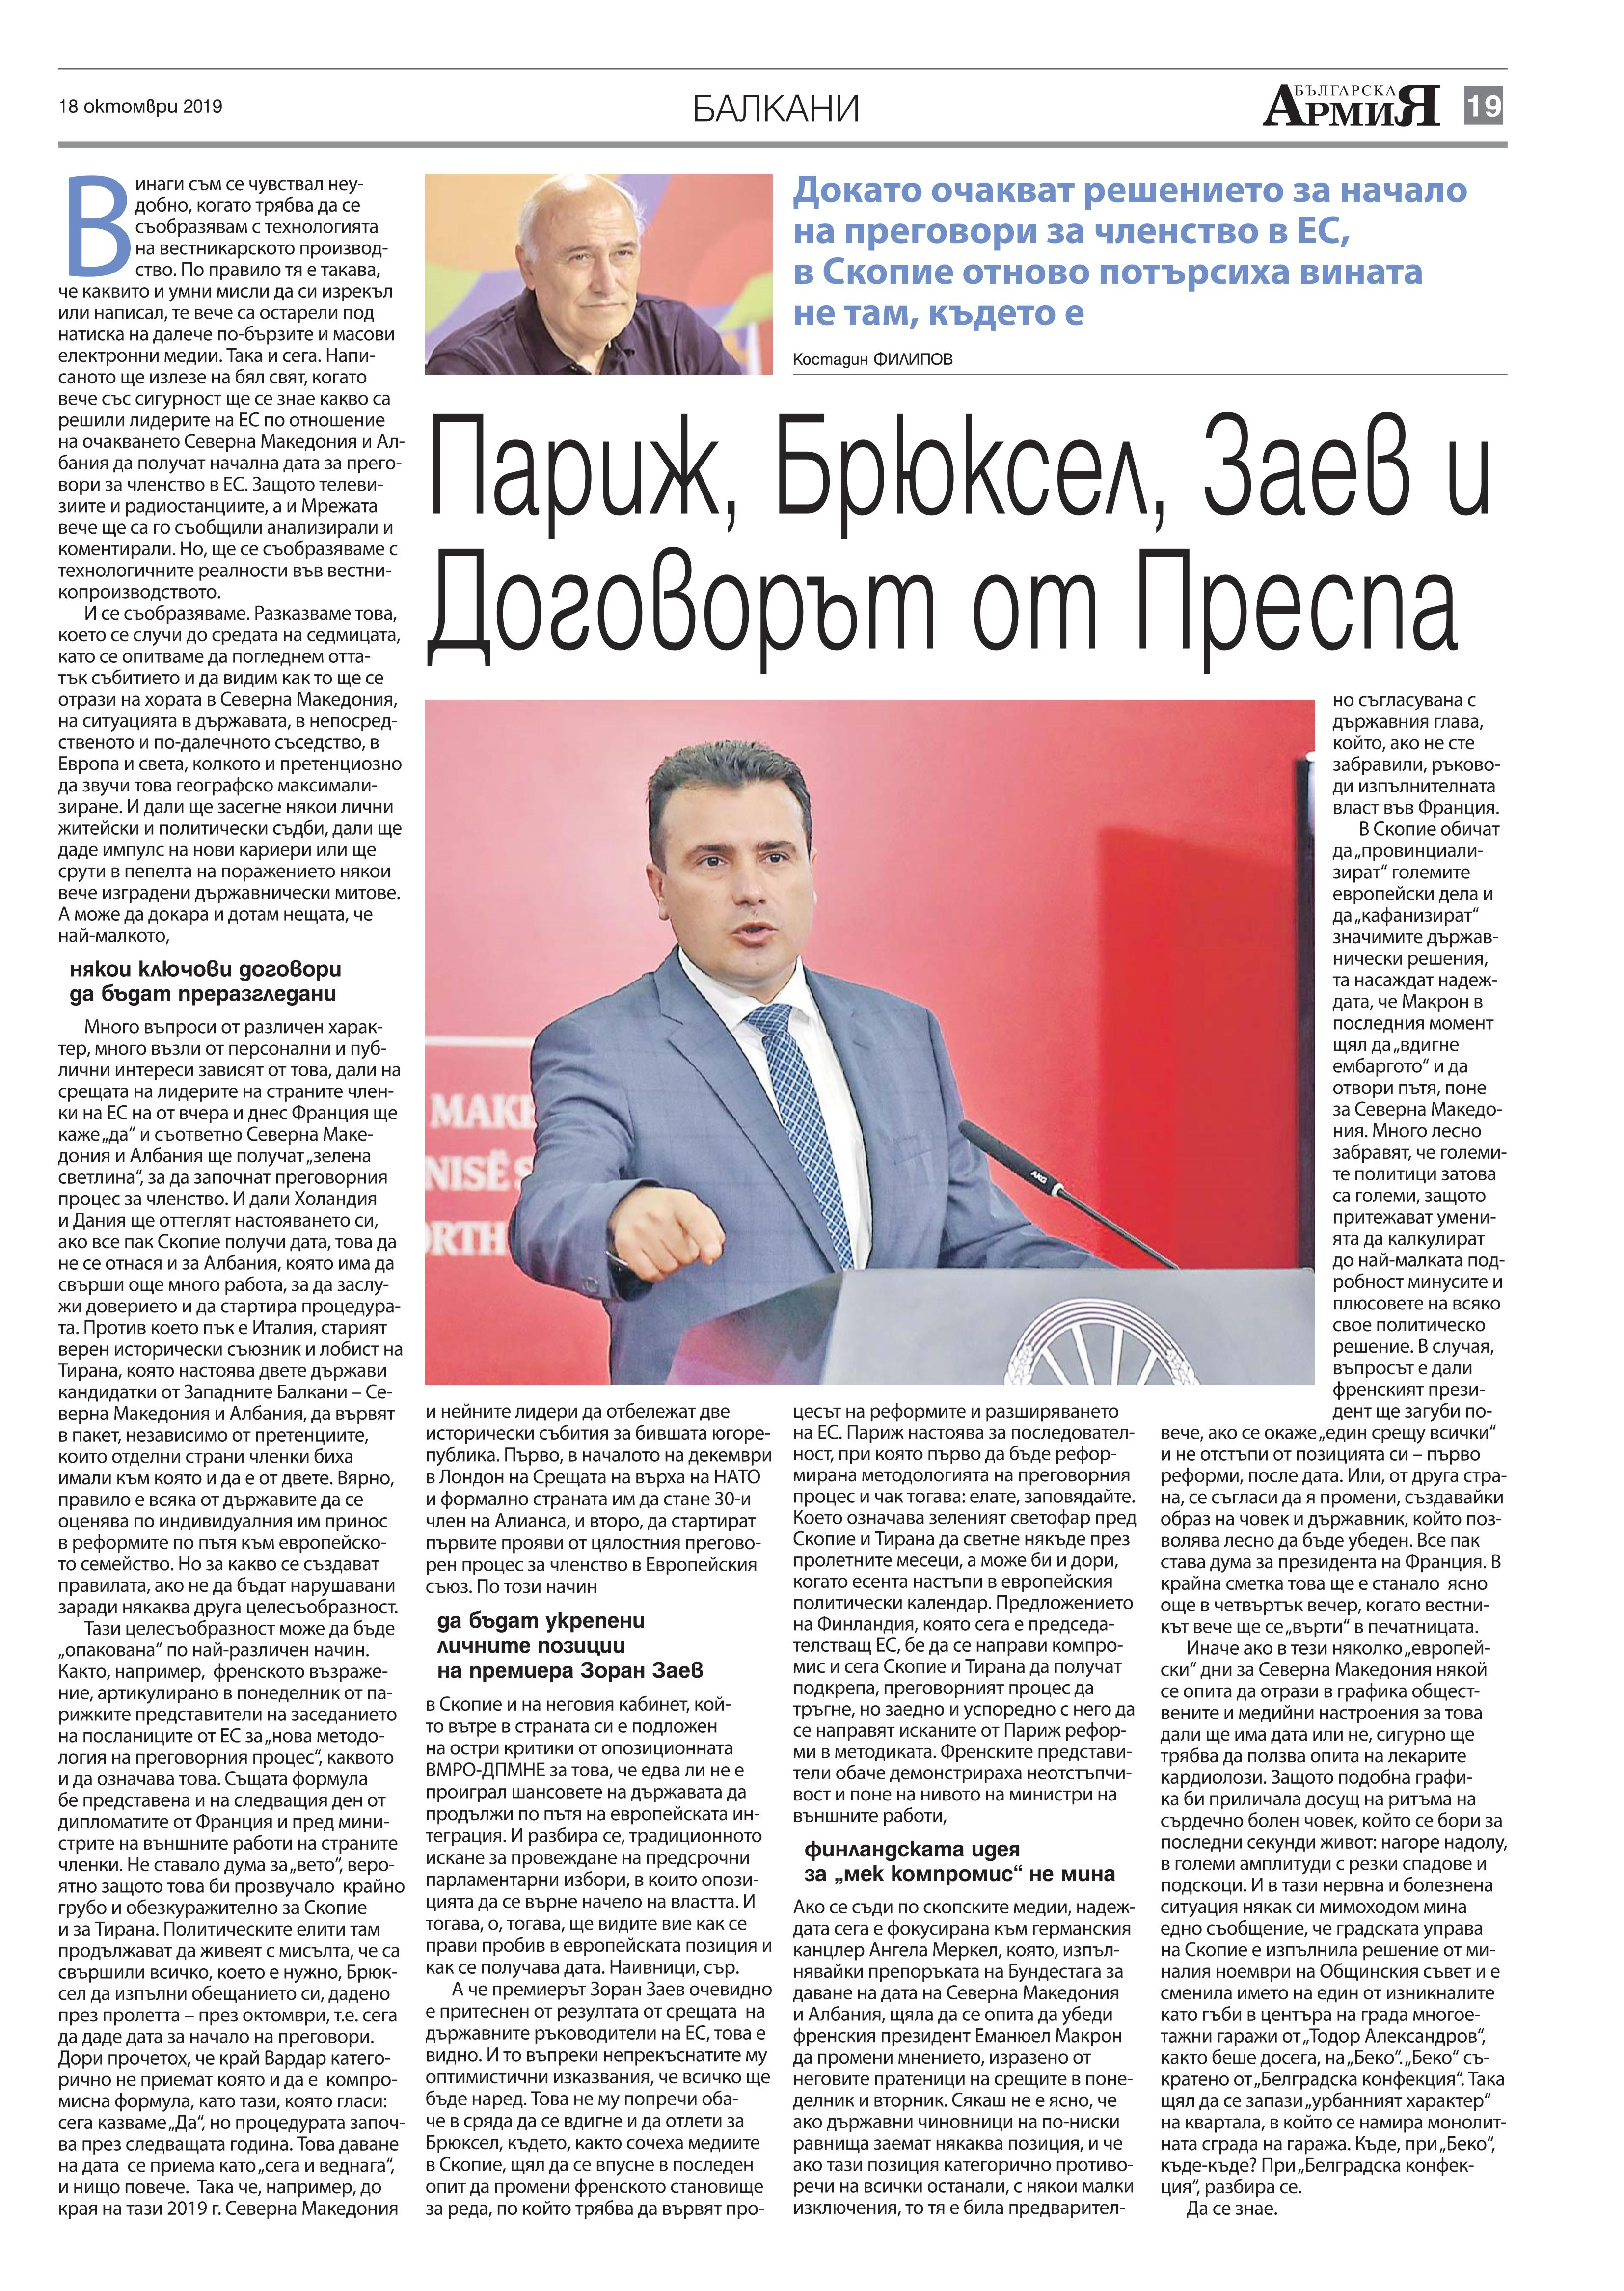 https://www.armymedia.bg/wp-content/uploads/2015/06/19.page1_-113.jpg